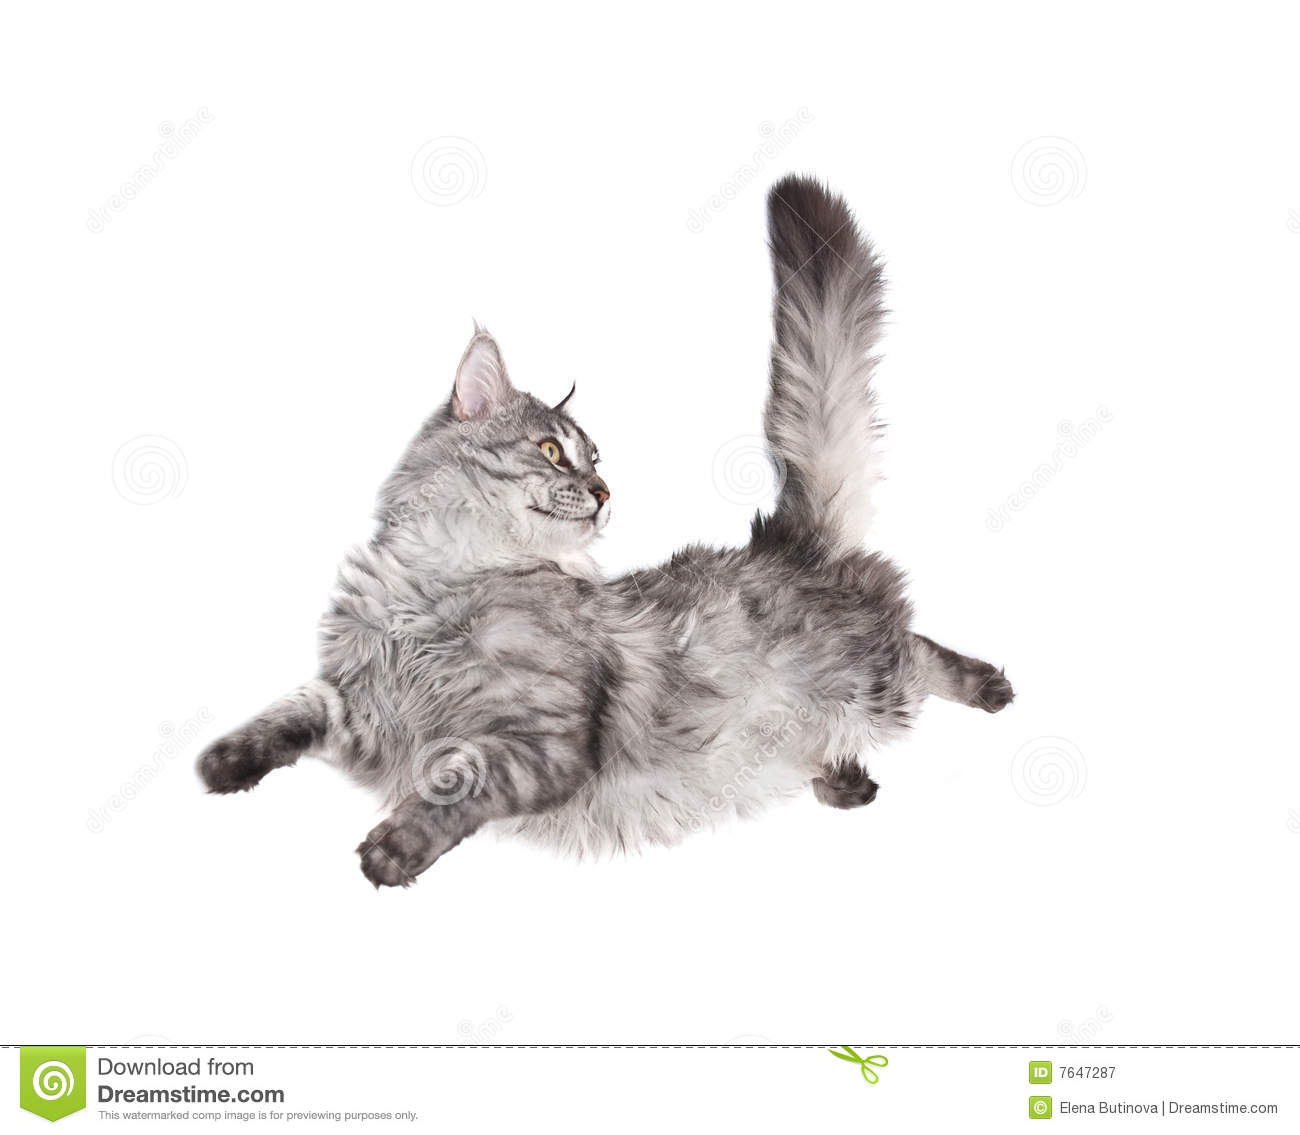 Cute Cat Images For Wallpaper Jumping Cat Royalty Free Stock Photography Image 7647287